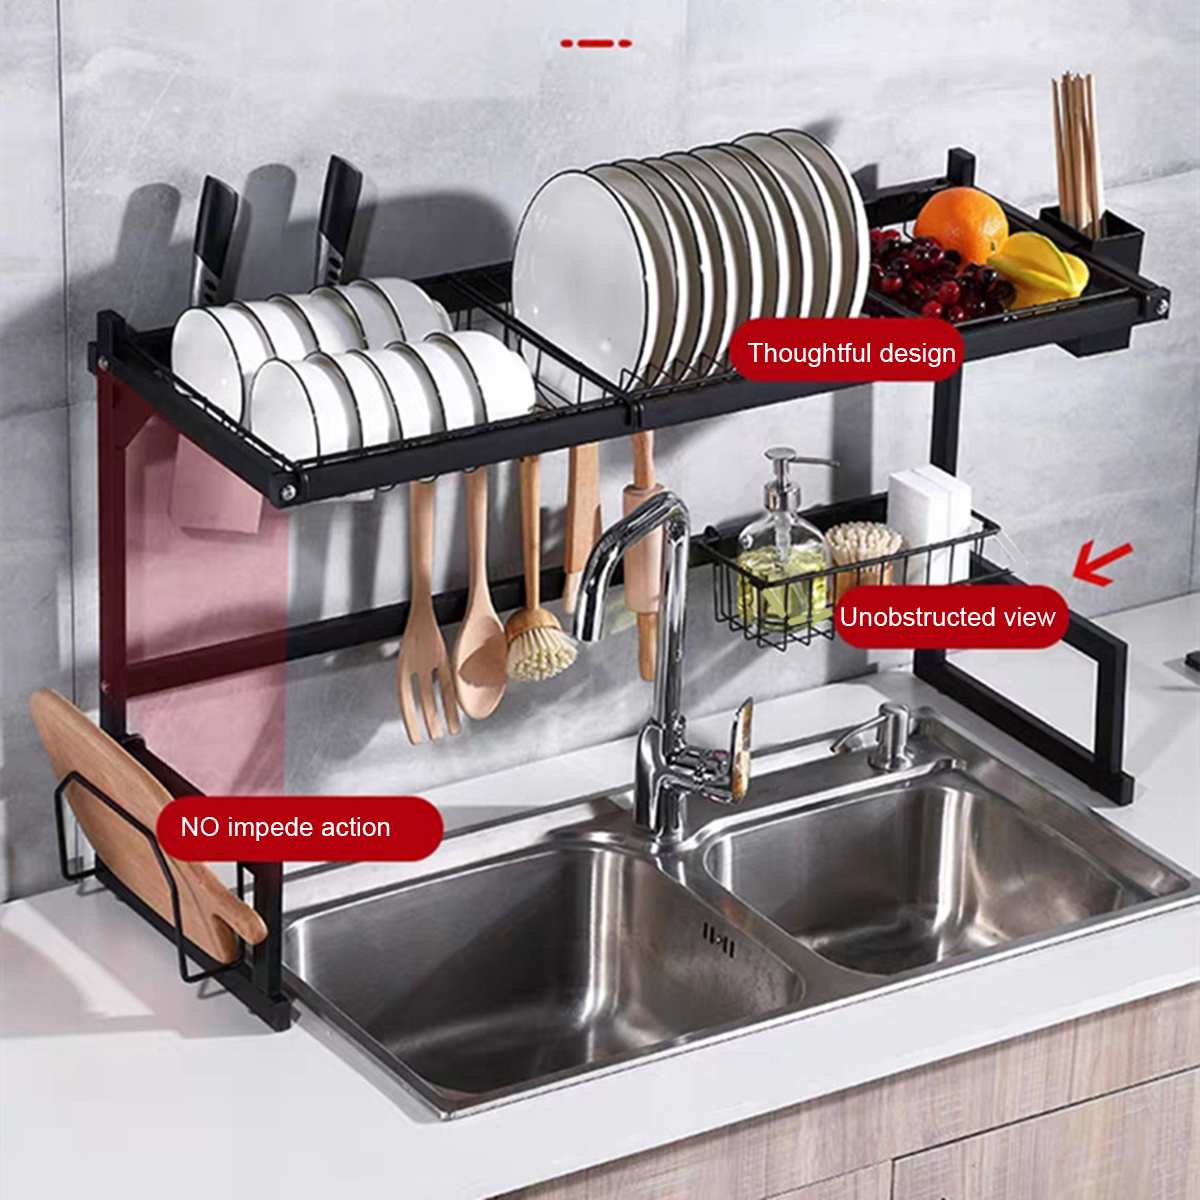 Kitchen Shelf Organizer Dish Drying Rack Over Sink Utensils Holder Bowl Dish Draining Shelf Kitchen Storage Countertop Organizer|Racks & Holders| |  - title=